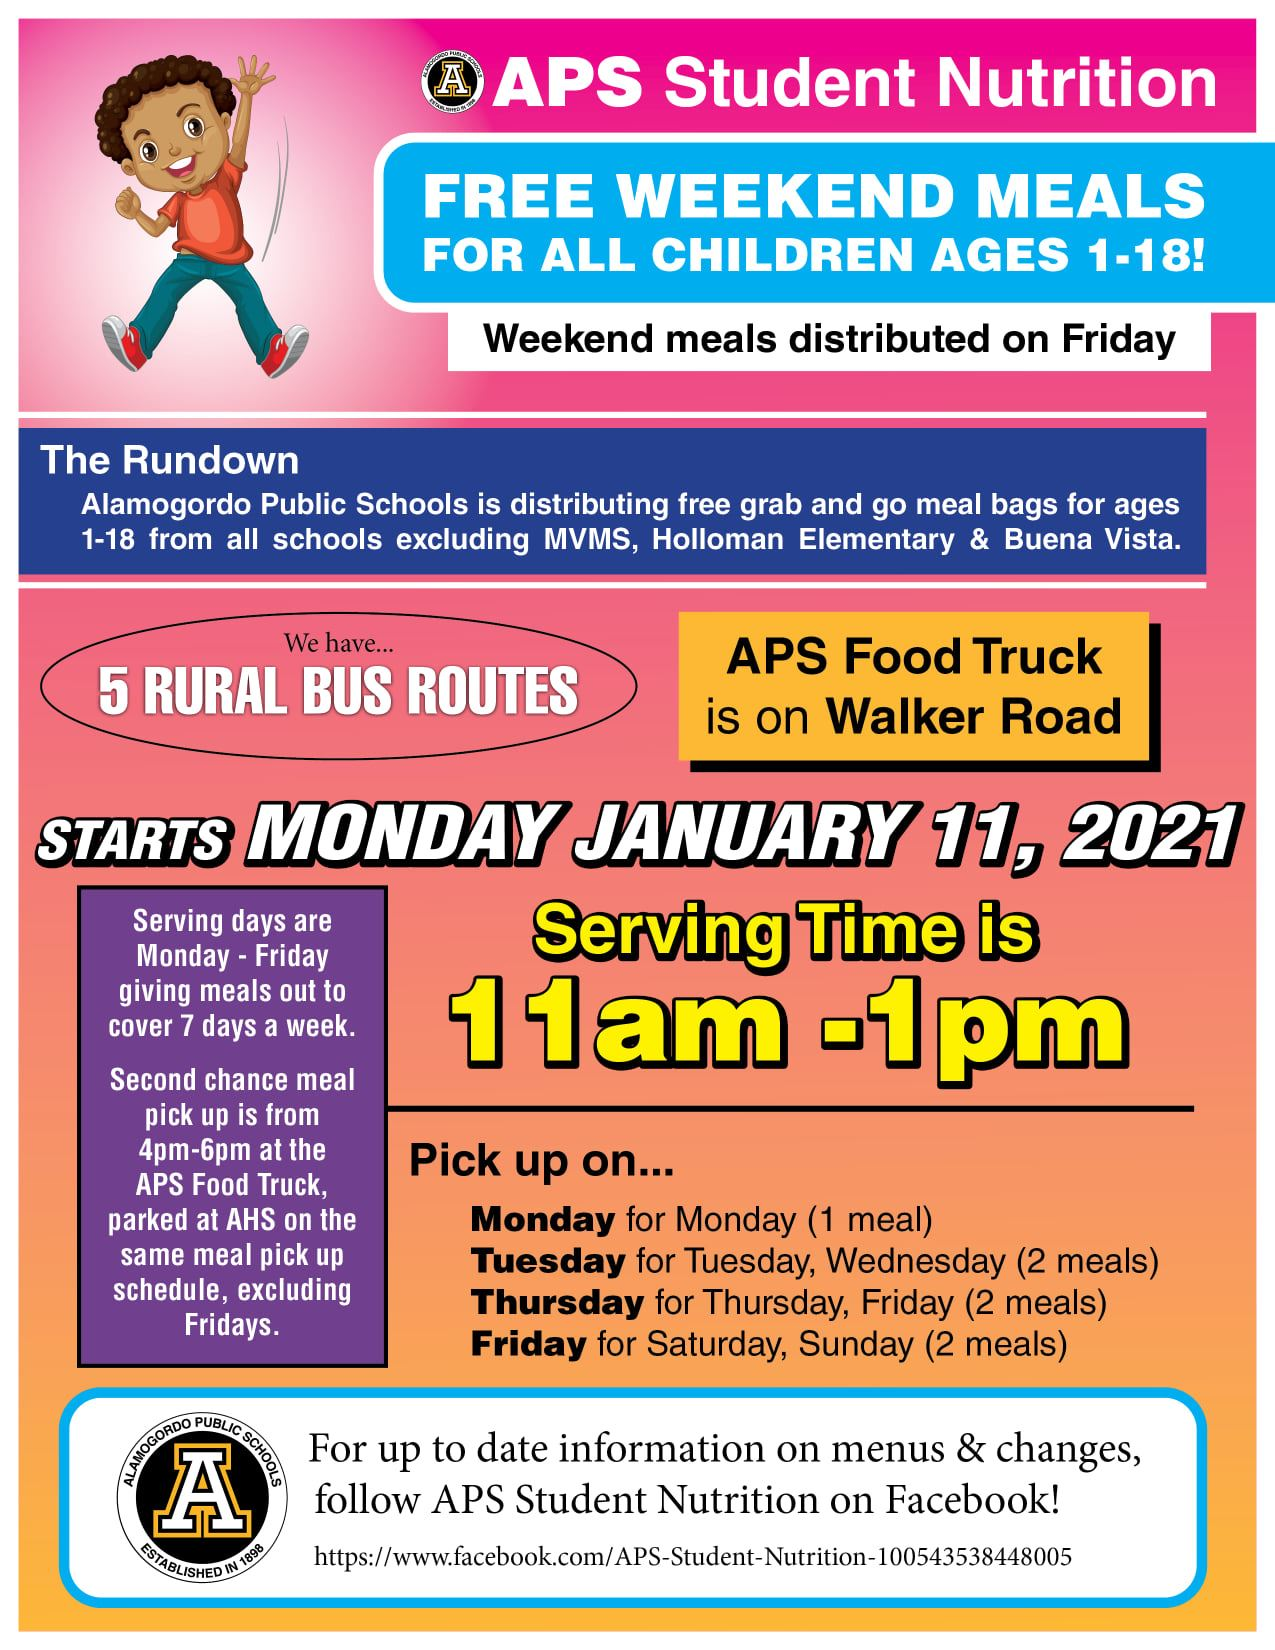 APS Student Nutrition Jan 2021